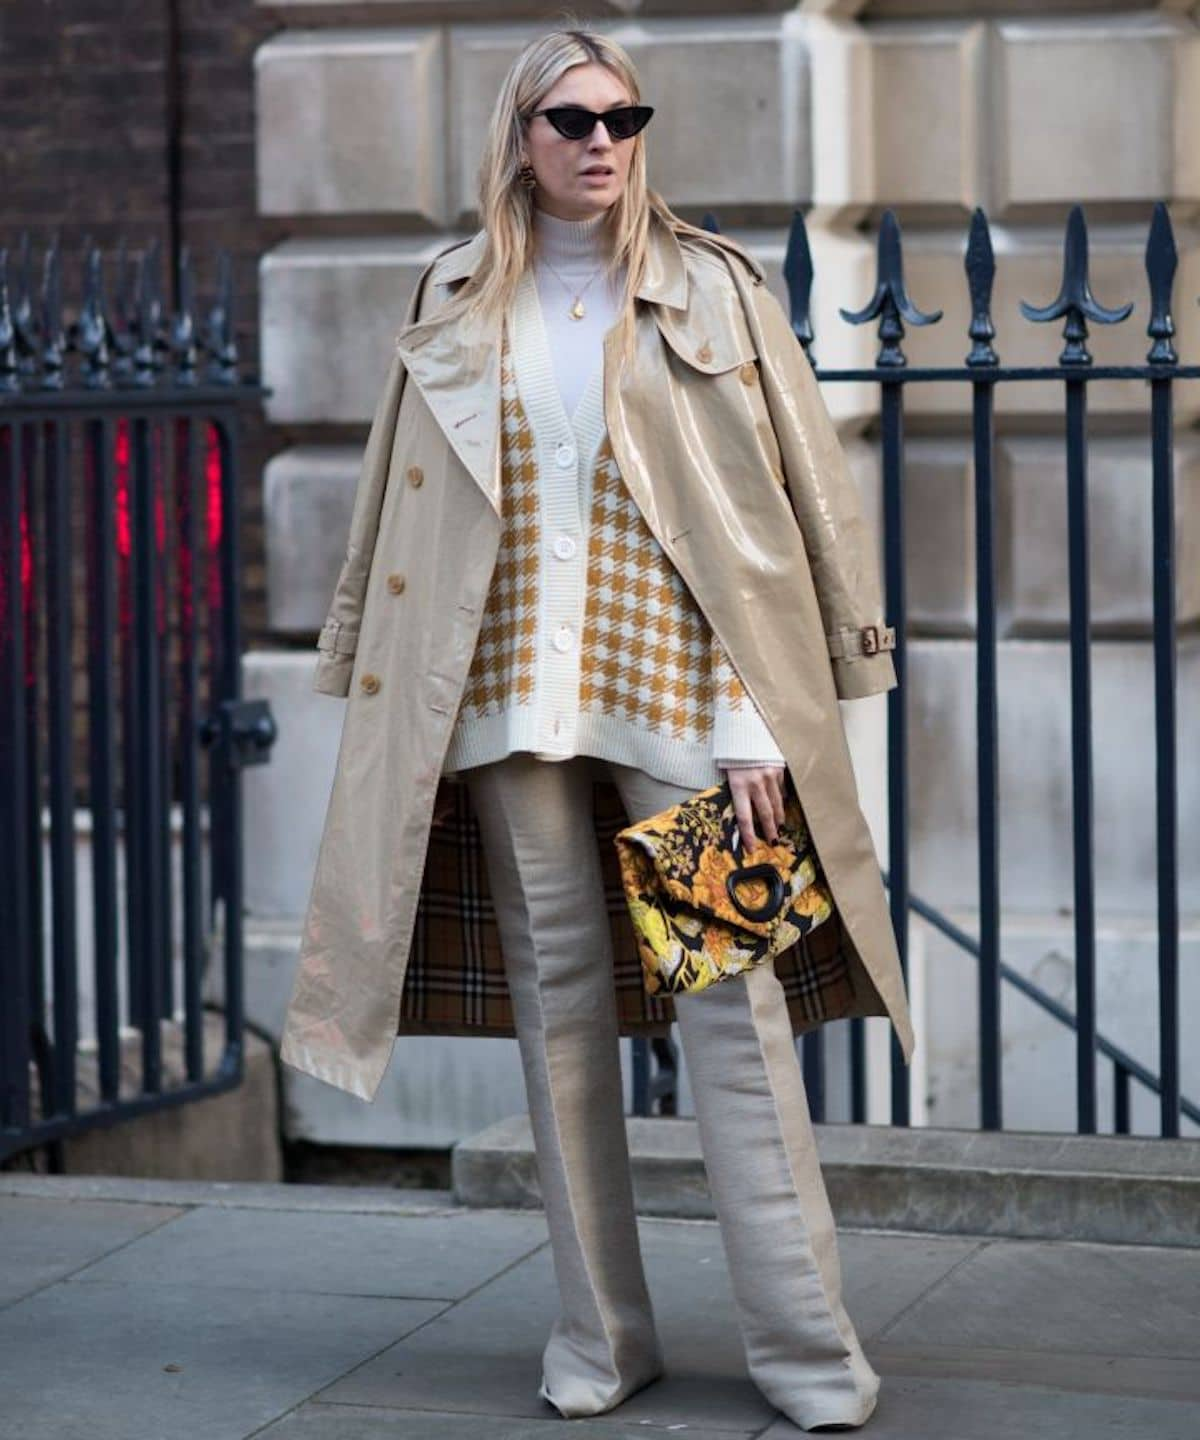 How to rock street chic like your favorite fashion influencer